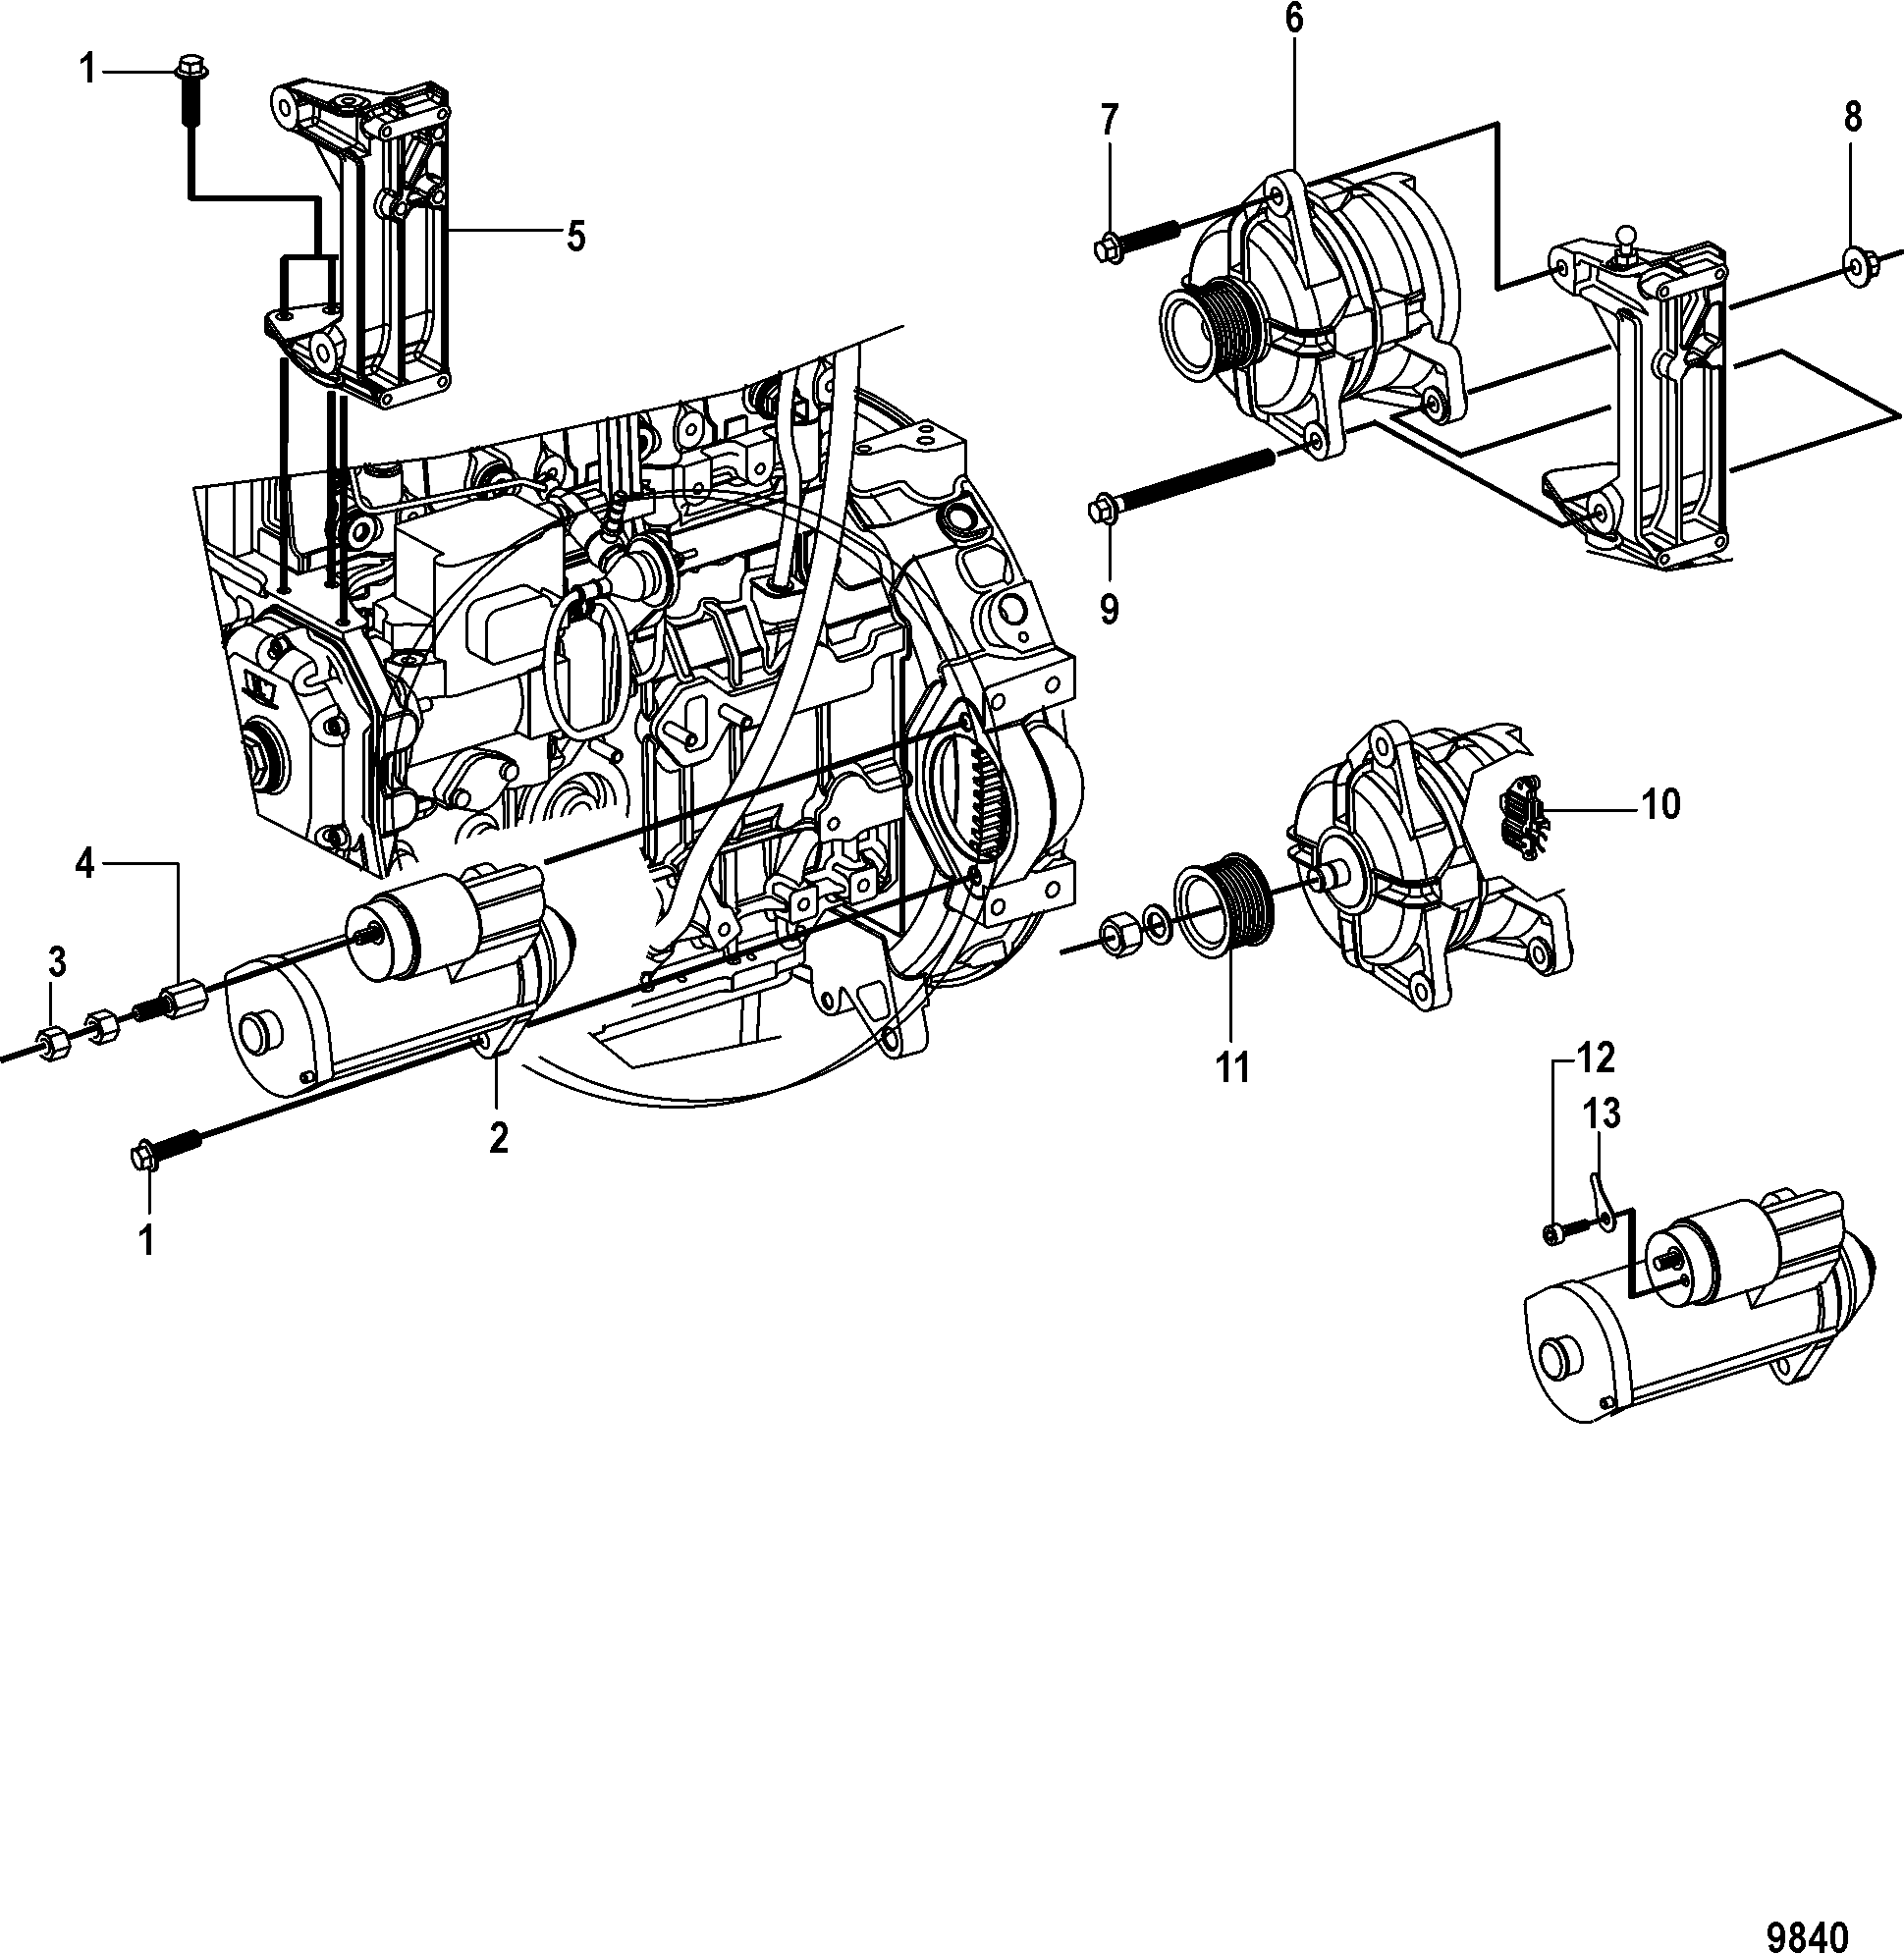 Alternator and Starter FOR MERCRUISER / MIE CUMMINS